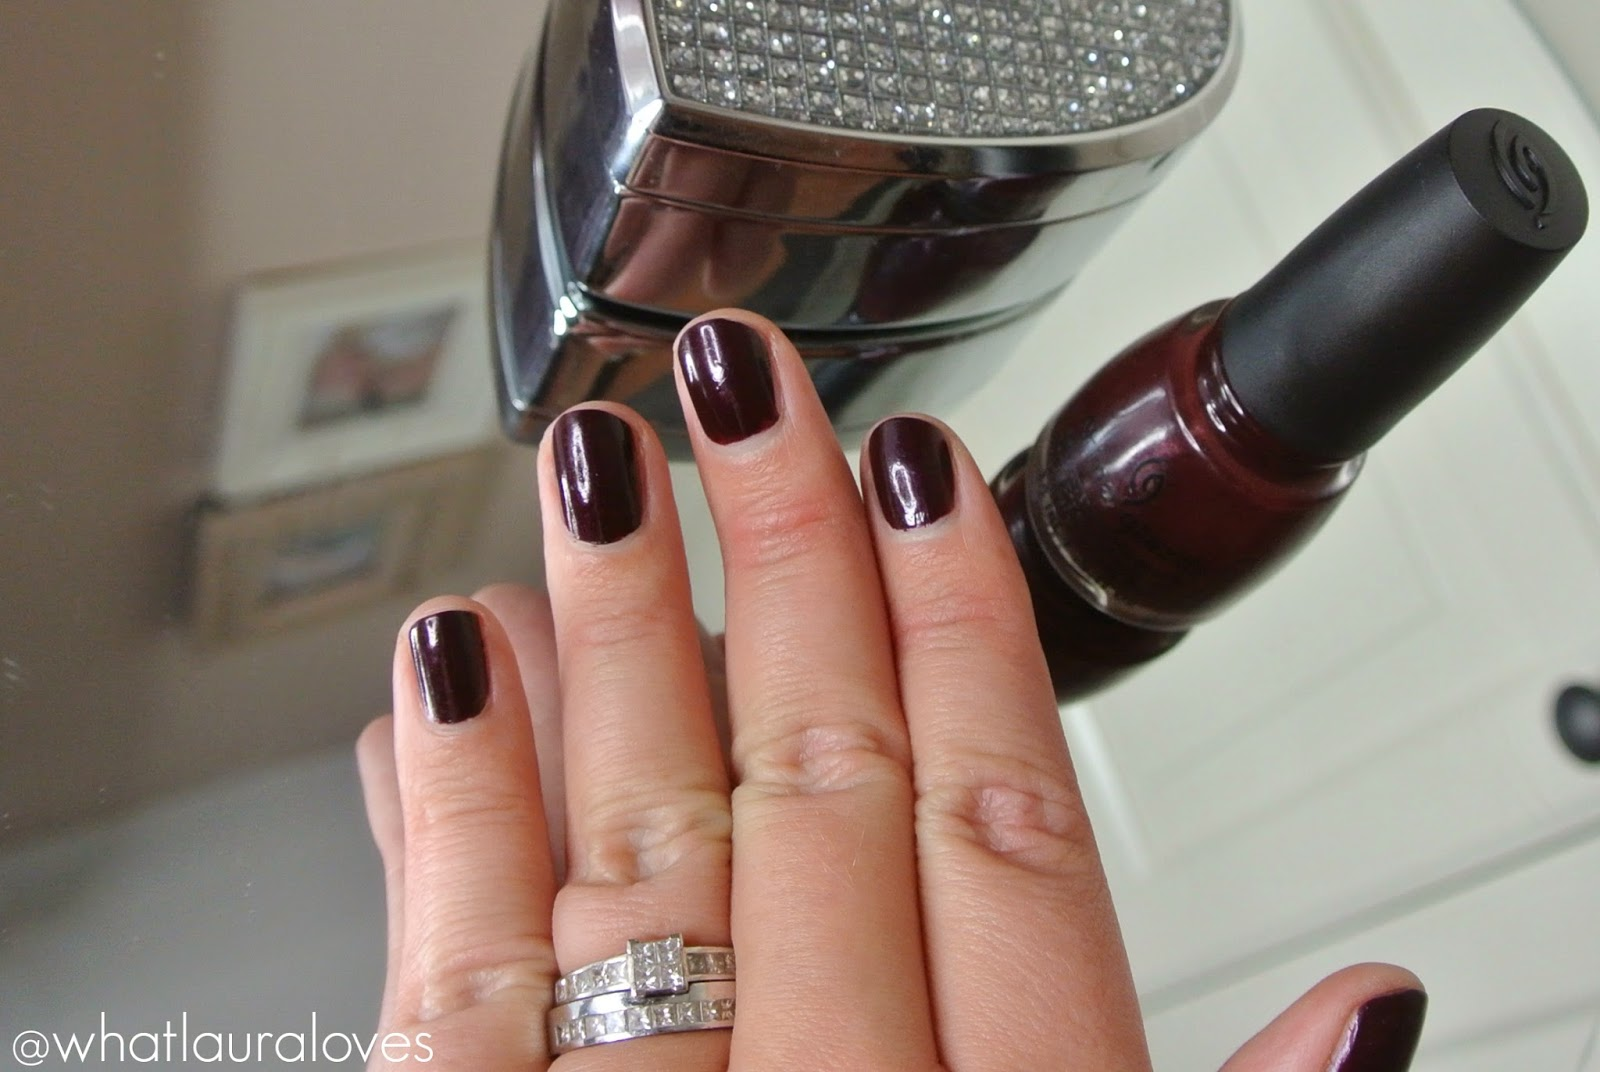 China Glaze All Aboard Collection Fall 2014 in Conduct Yourself Swatch